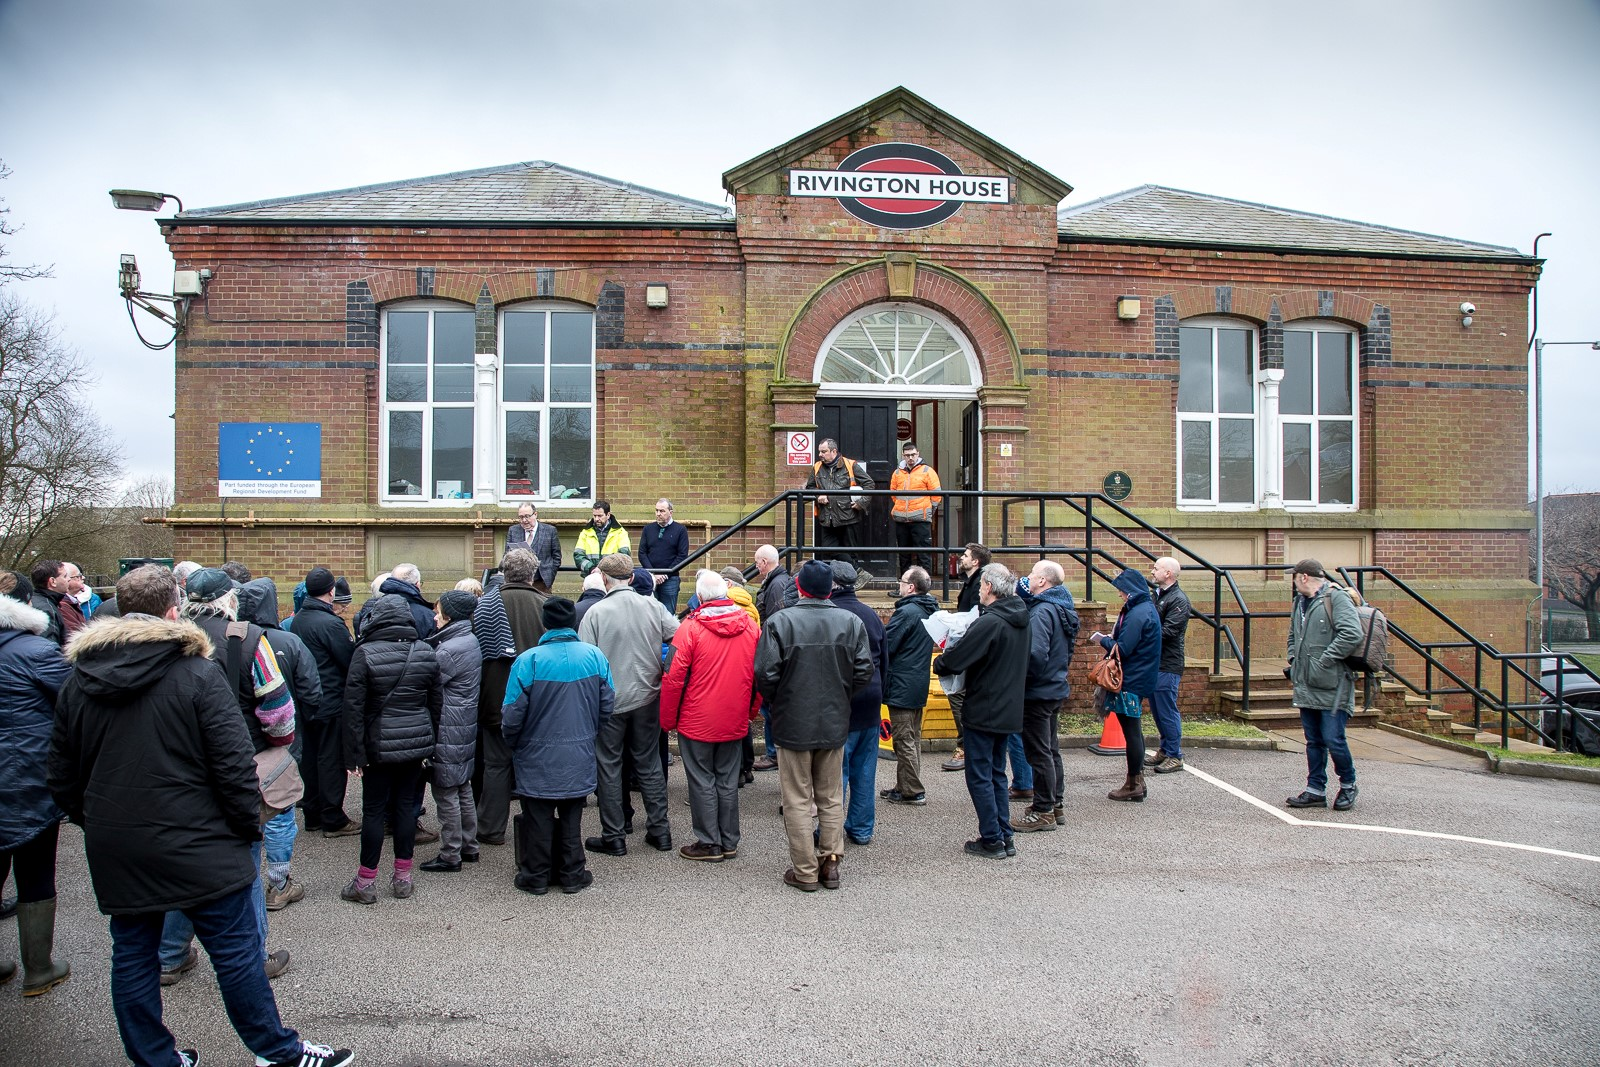 HORWICH COMMUNITY COMES TOGETHER TO COMMEMORATE HISTORY OF LOCO WORKS